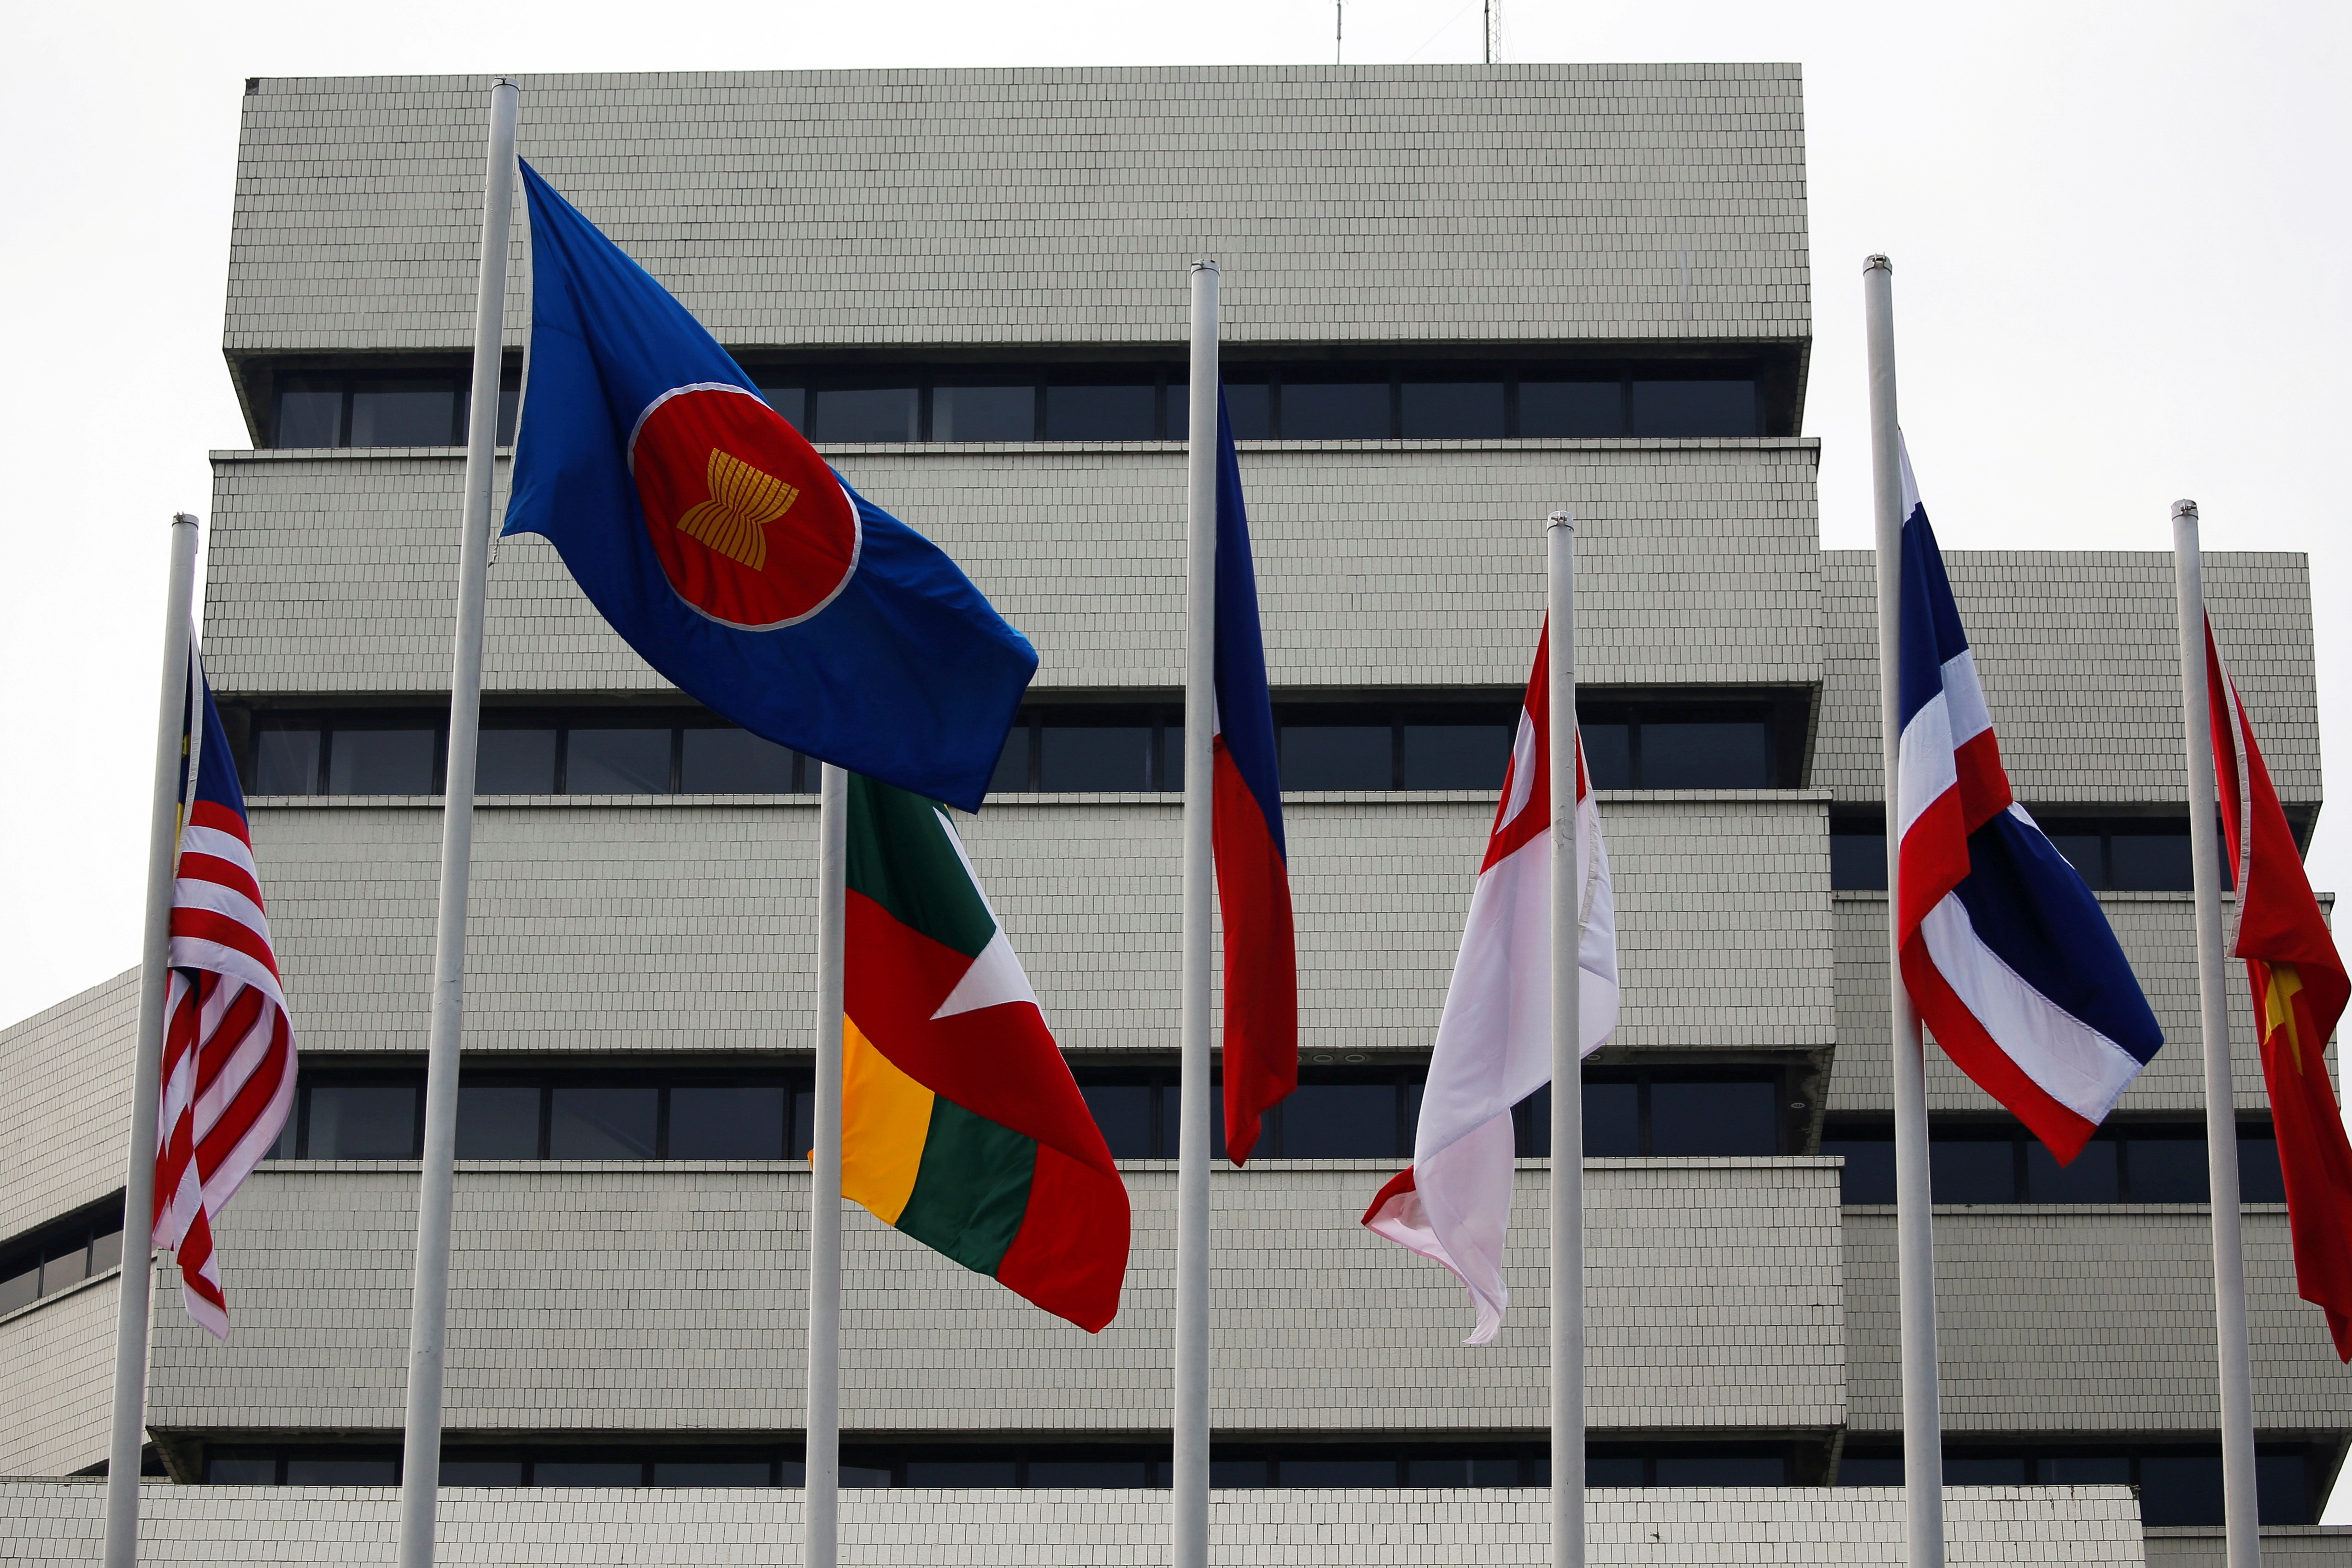 Flags are seen outside the Association of Southeast Asian Nations (ASEAN) secretariat building, ahead of the ASEAN leaders' meeting in Jakarta, Indonesia, April 23, 2021. REUTERS/Willy Kurniawan/File Photo